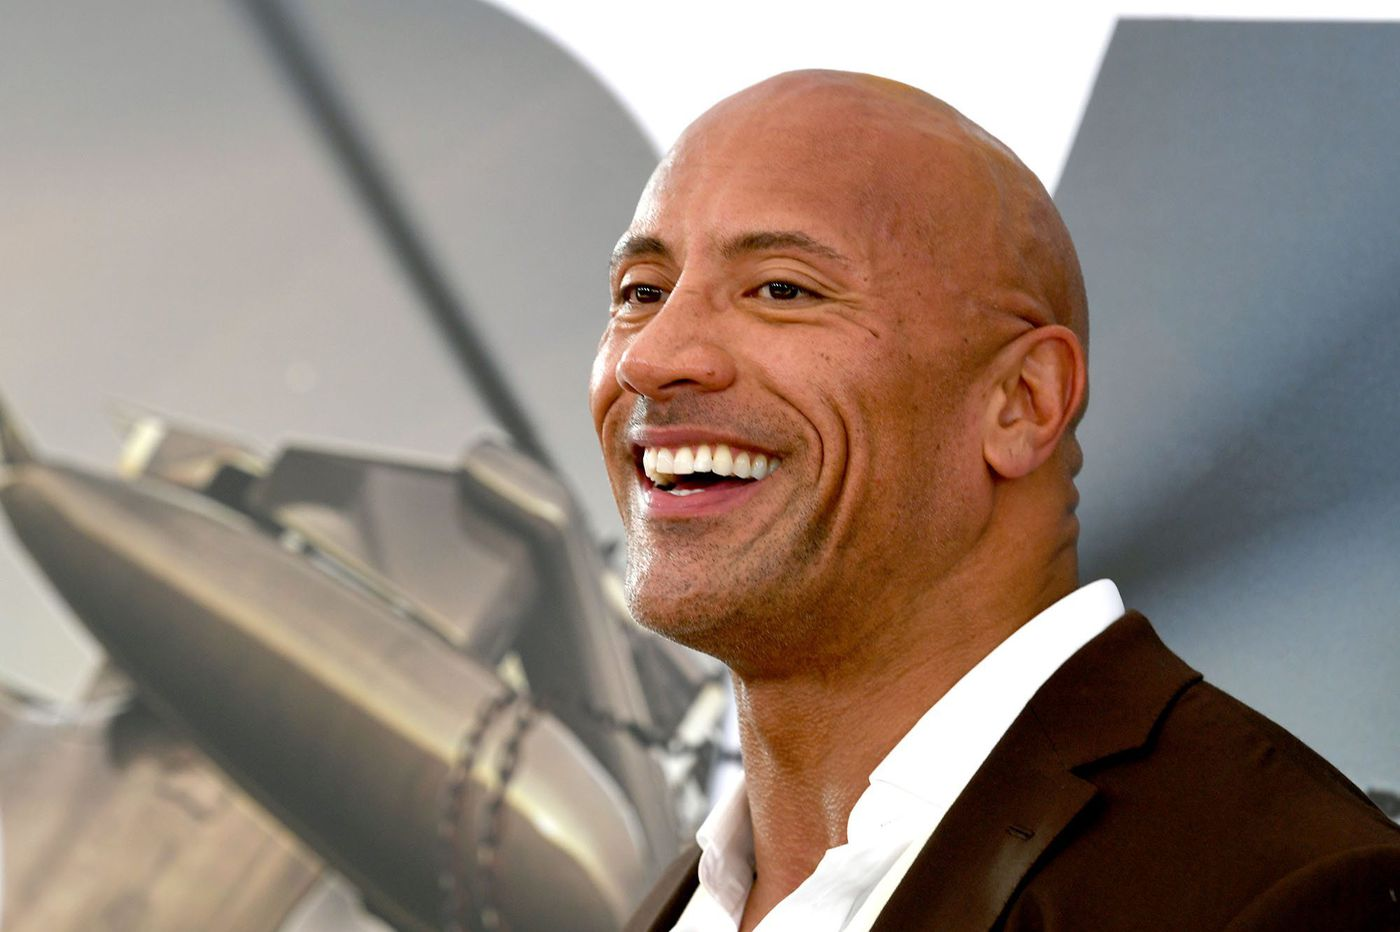 The Rock wishes Philly grandmom happy 100th birthday